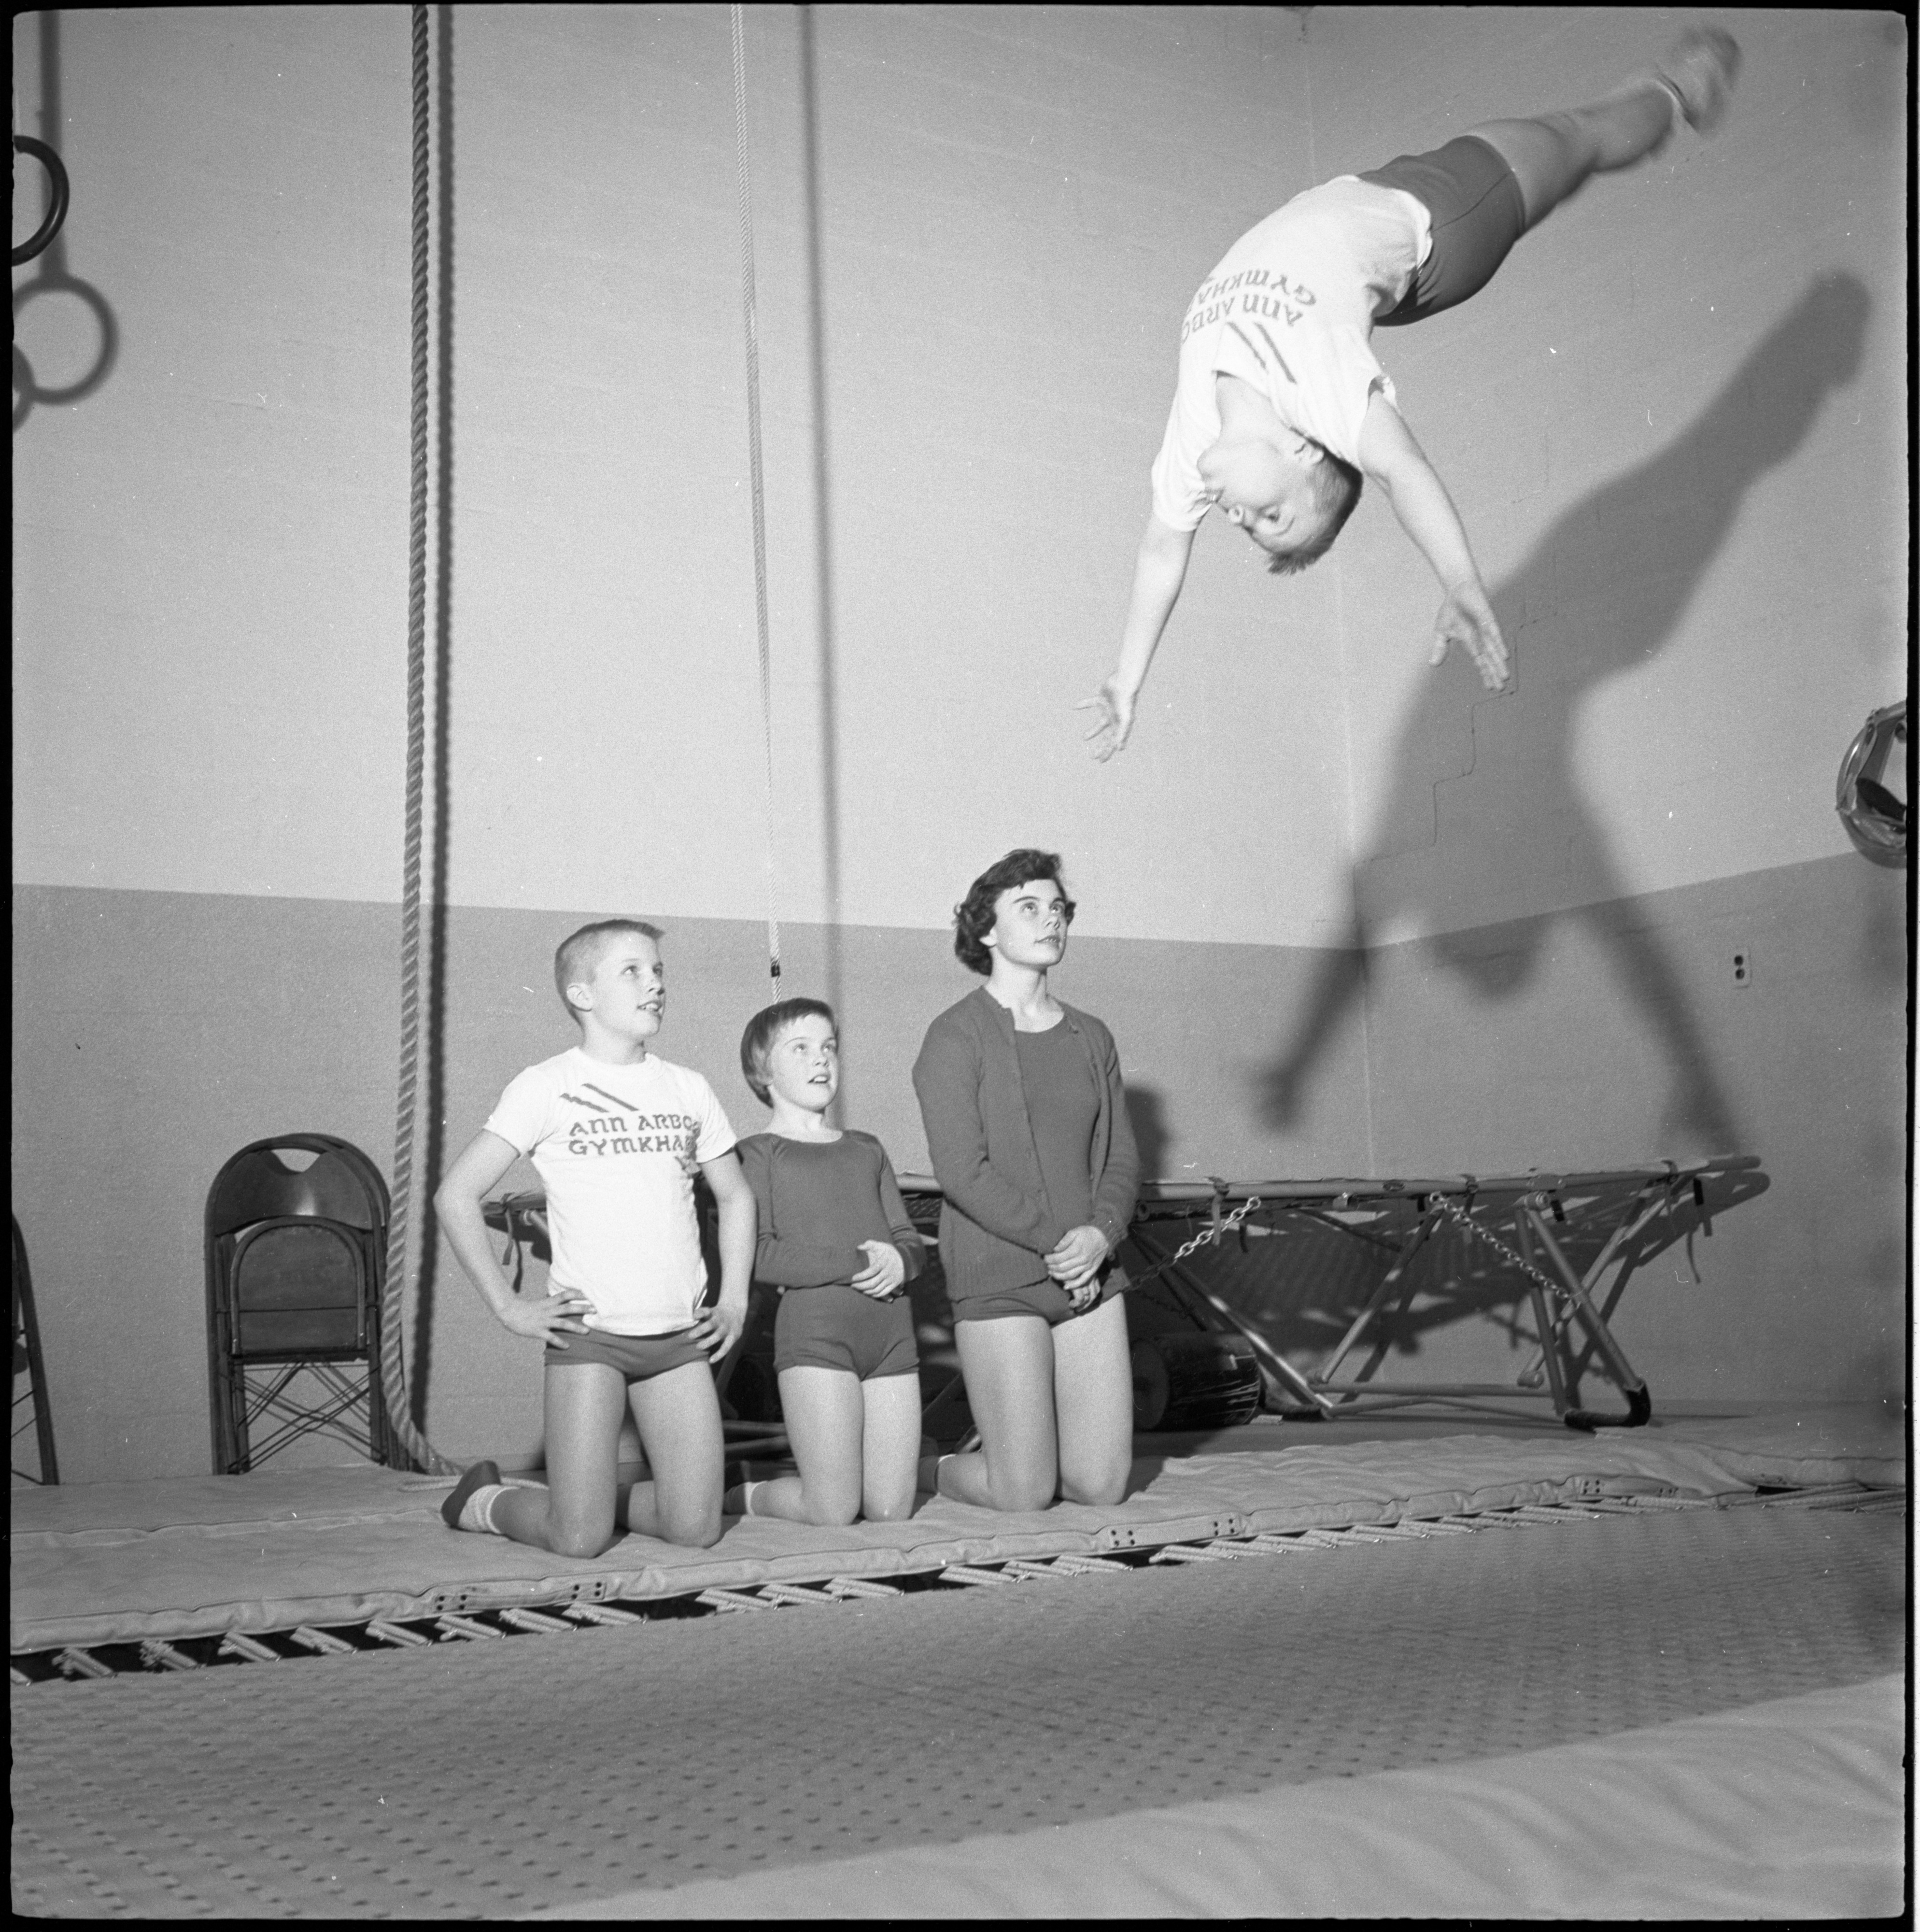 Tom Huntzicker Practices His Competitive Trampoline Routine At The Ann Arbor Gymkhana, April 1960 image